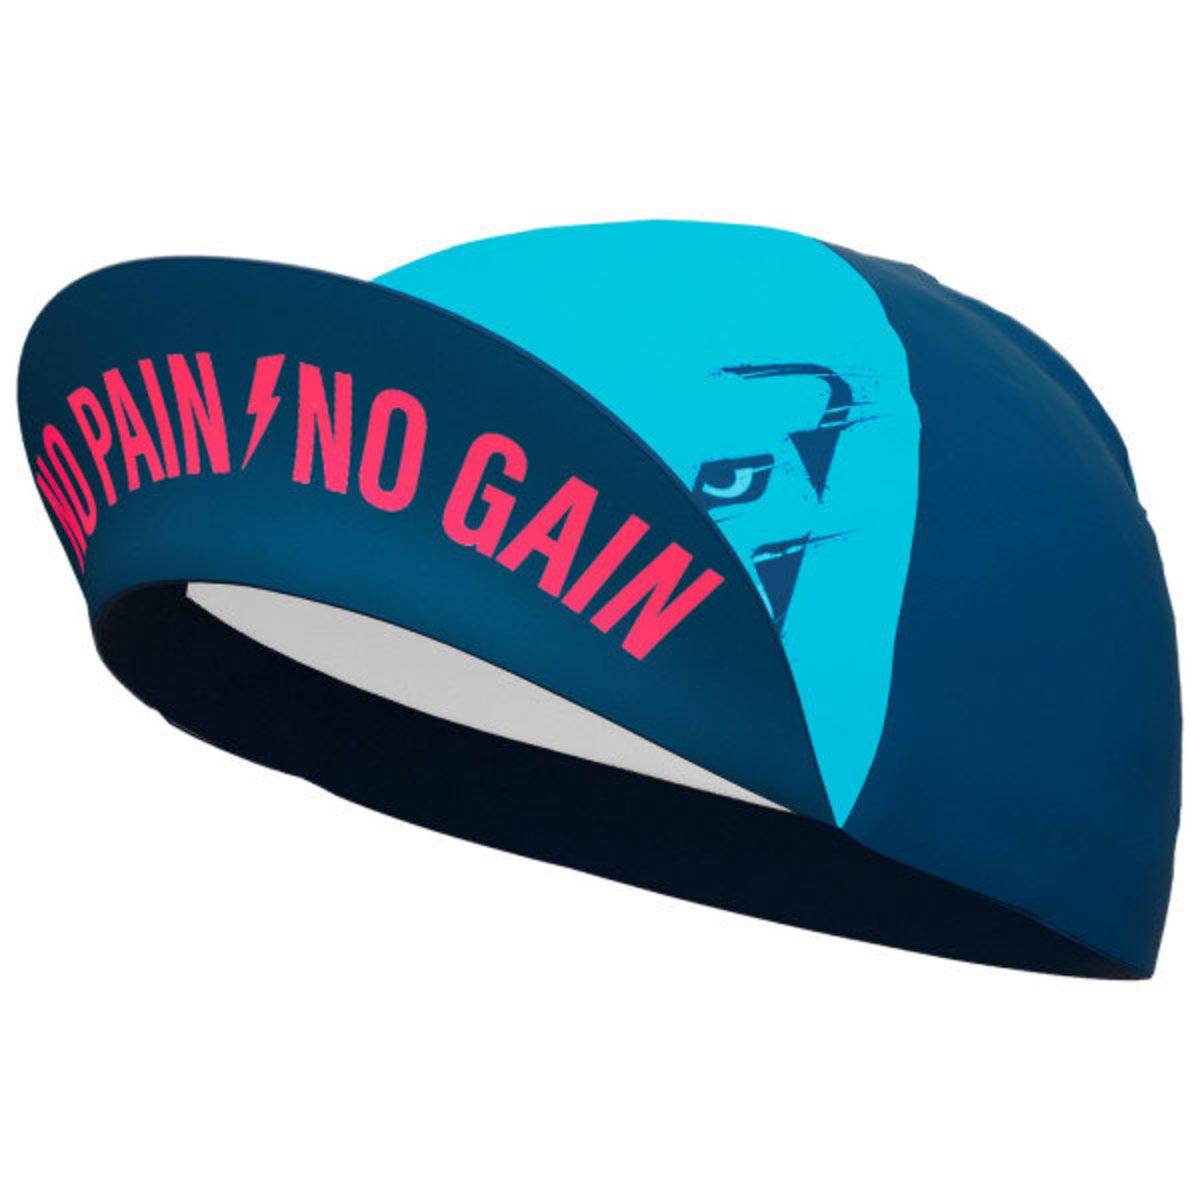 Performance Visor Cap Silvretta/8960 Faded Uni58